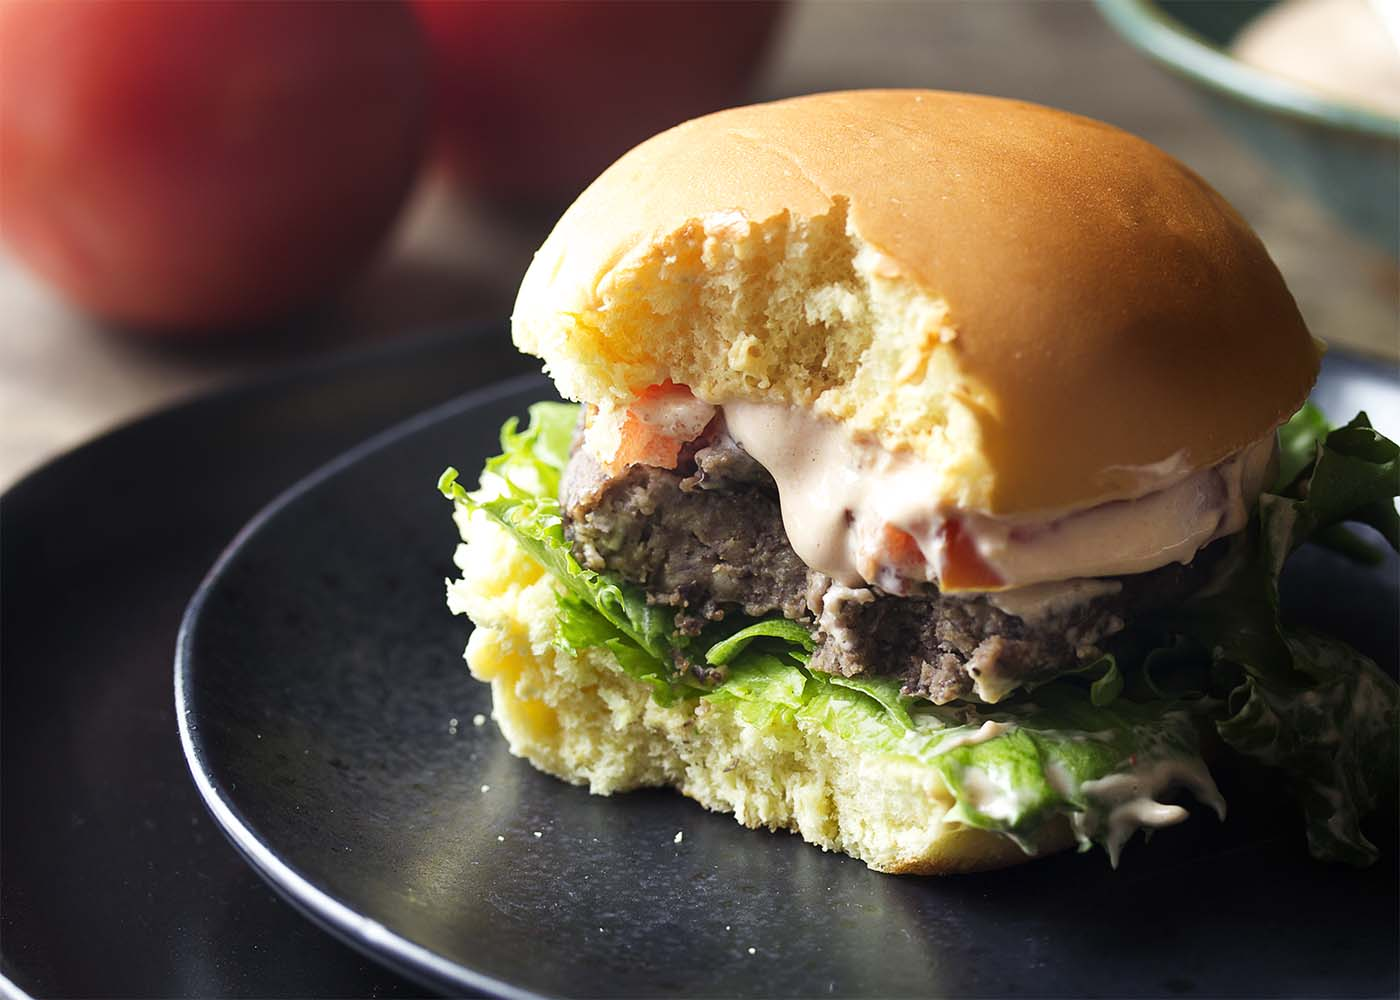 Burger prepared with toppings and a bite taken out of it on a black plate.